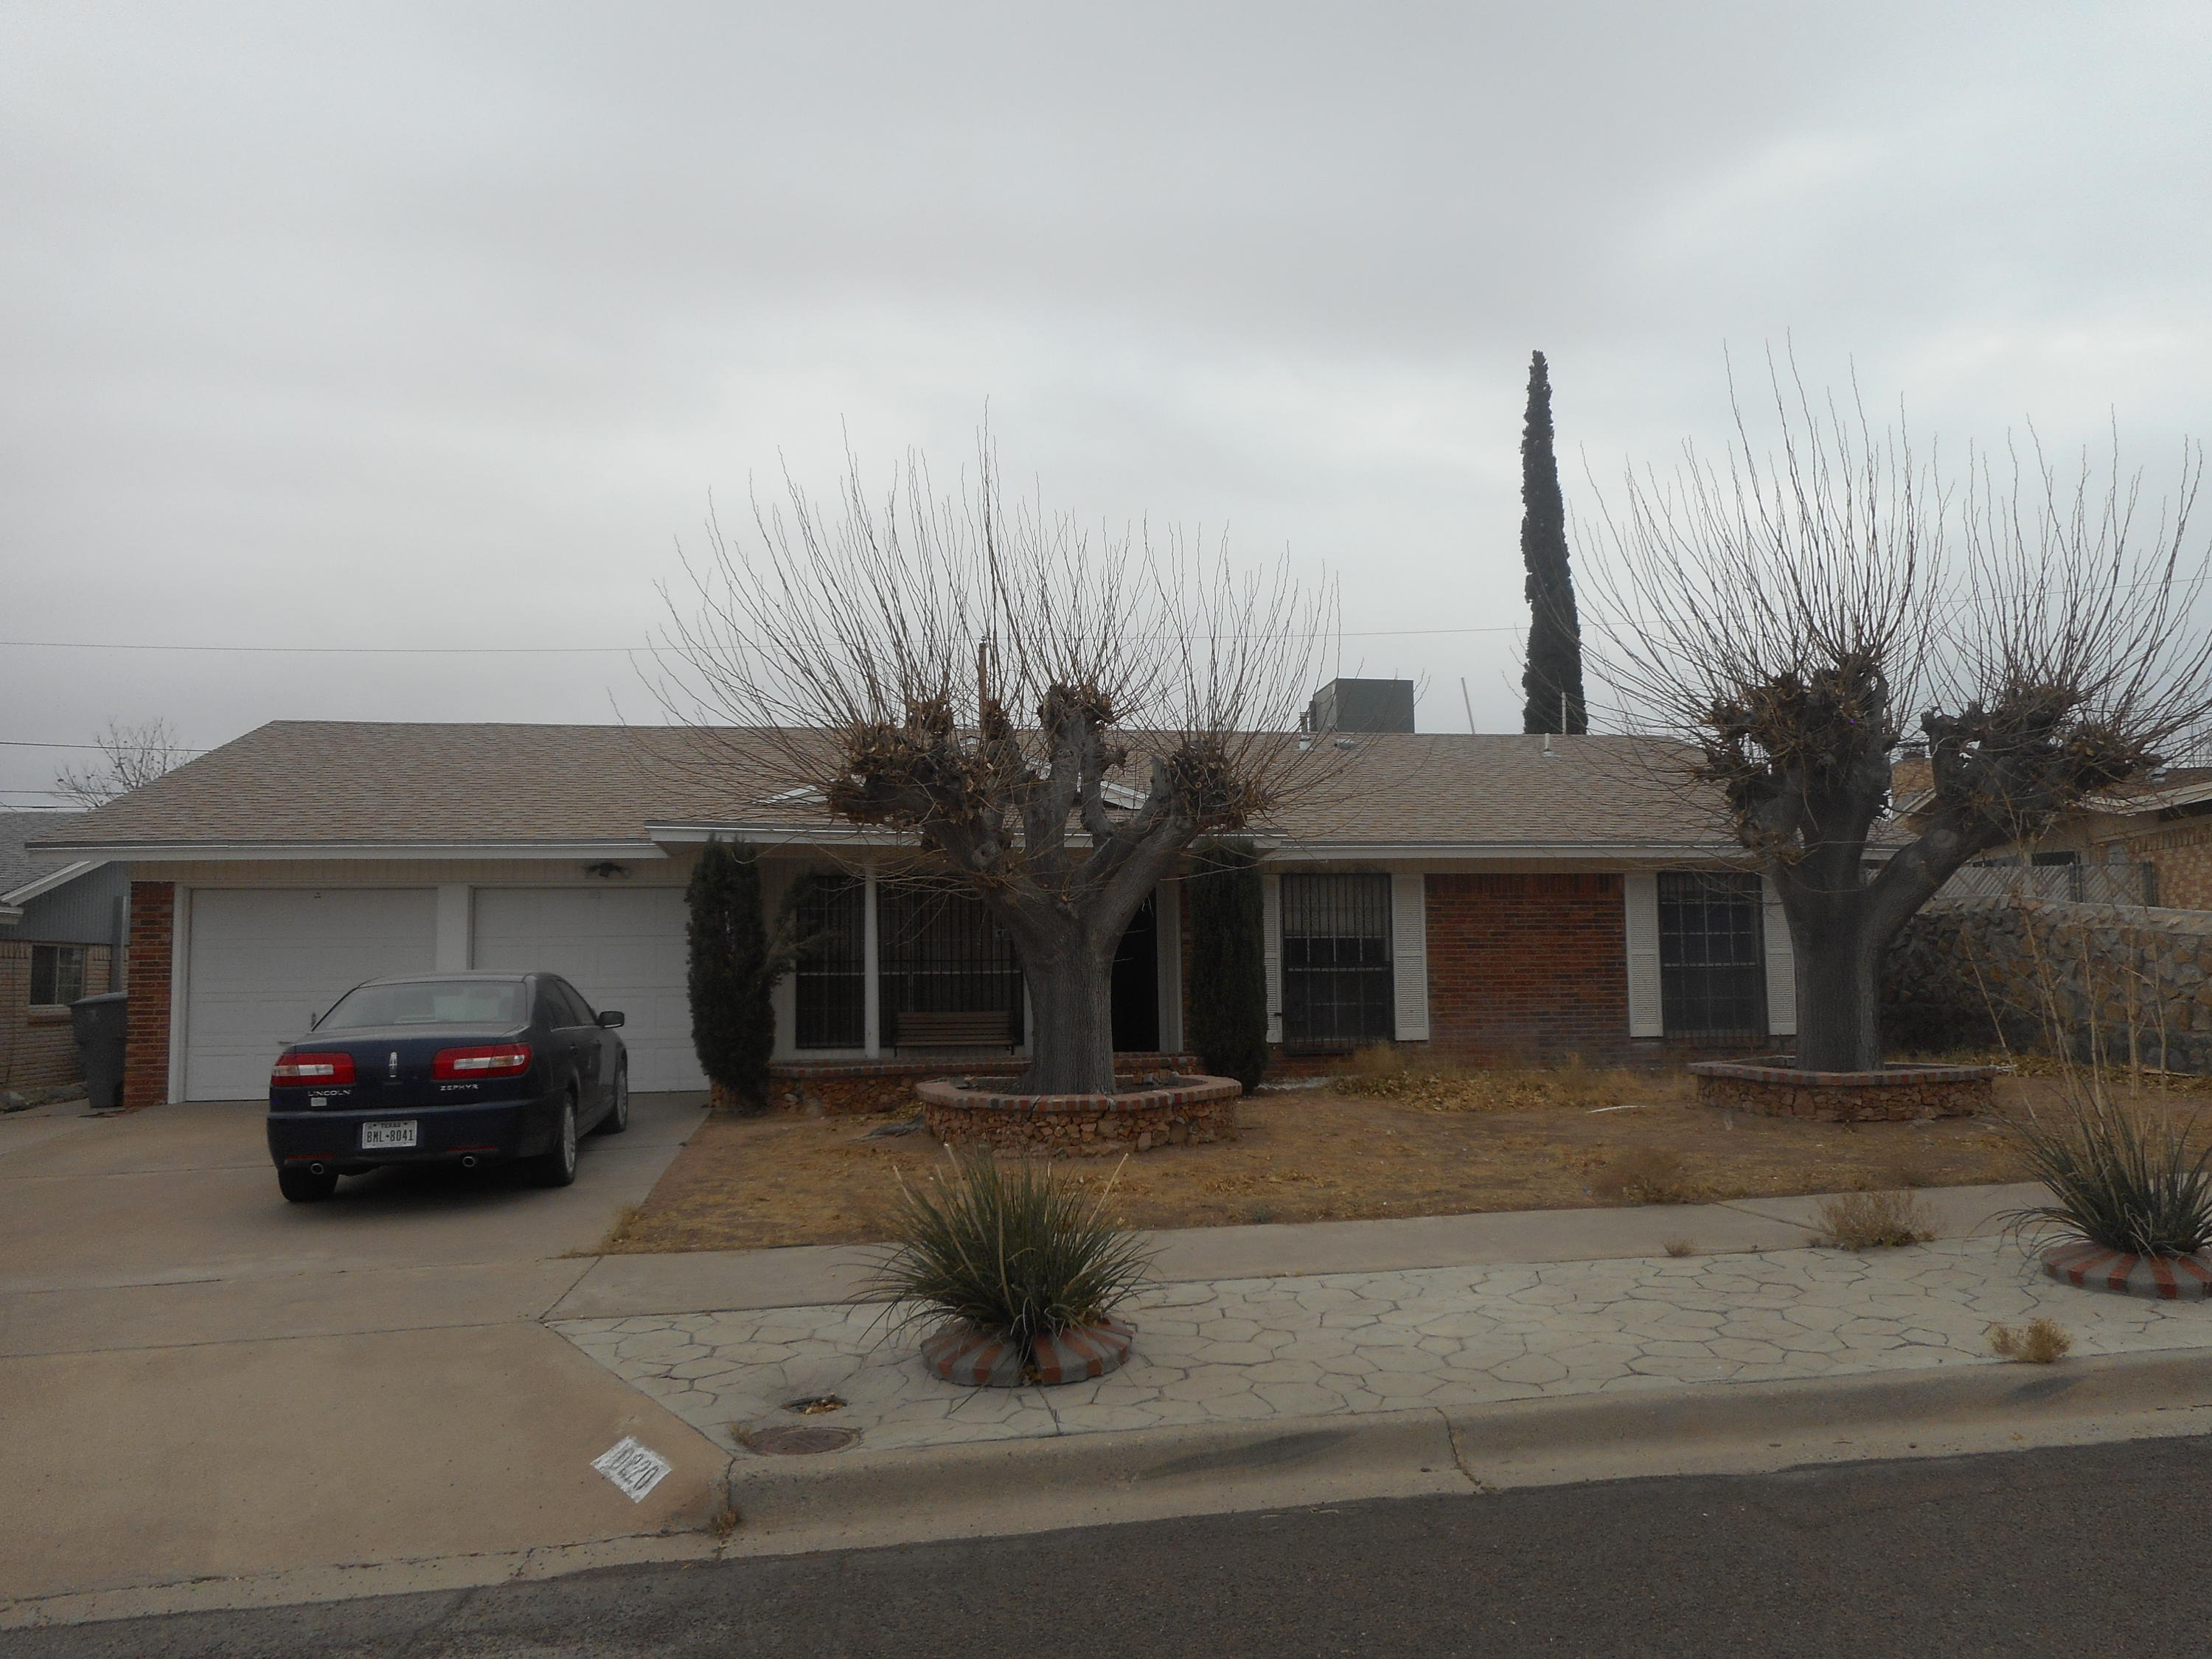 10220 AGGIE, El Paso, Texas 79924, 3 Bedrooms Bedrooms, ,2 BathroomsBathrooms,Residential,For sale,AGGIE,839760